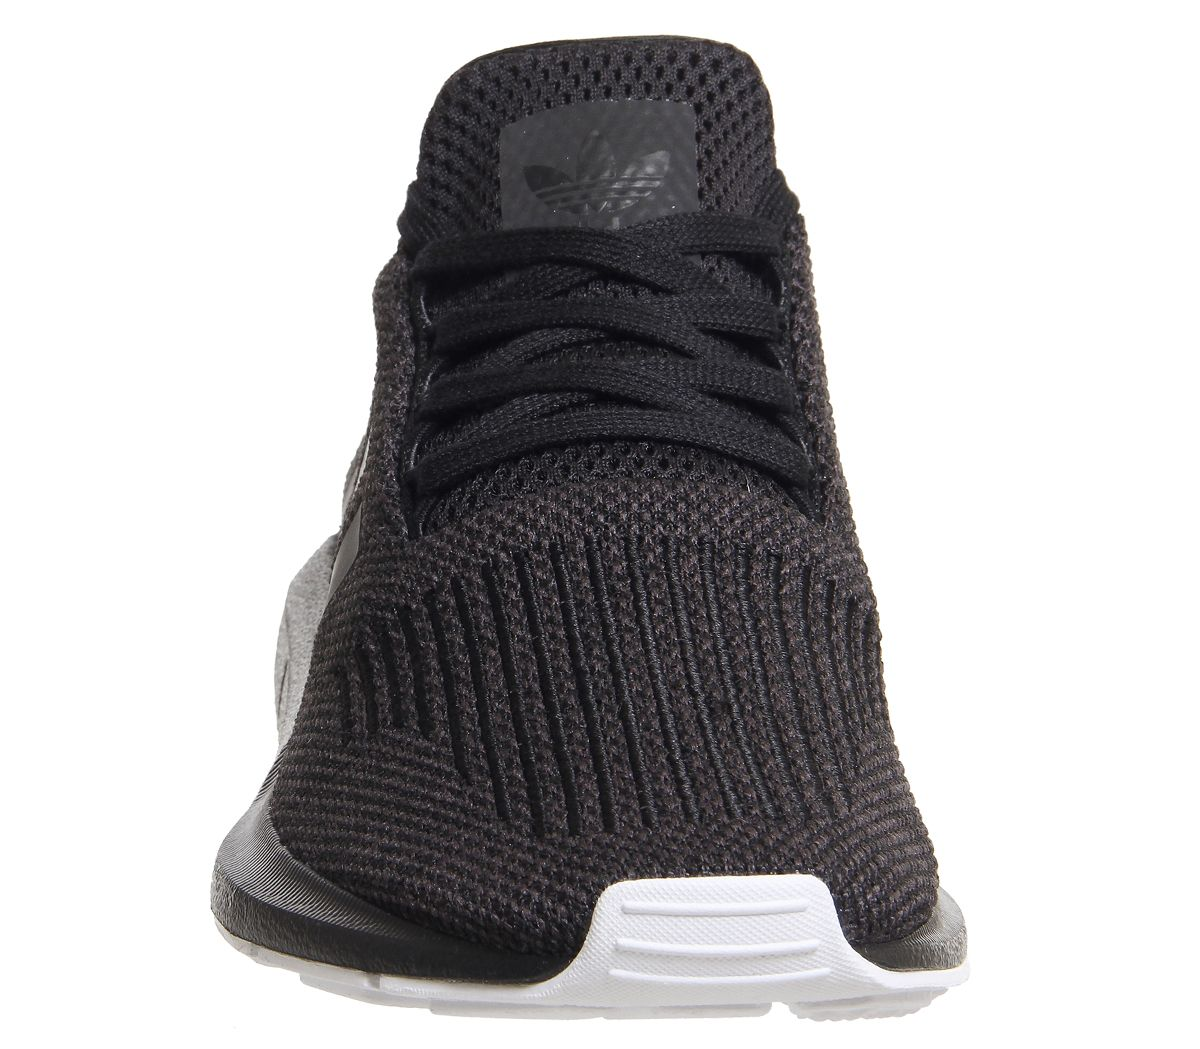 c1babd159 adidas Swift Run Trainers Core Black Carbon White - Hers trainers